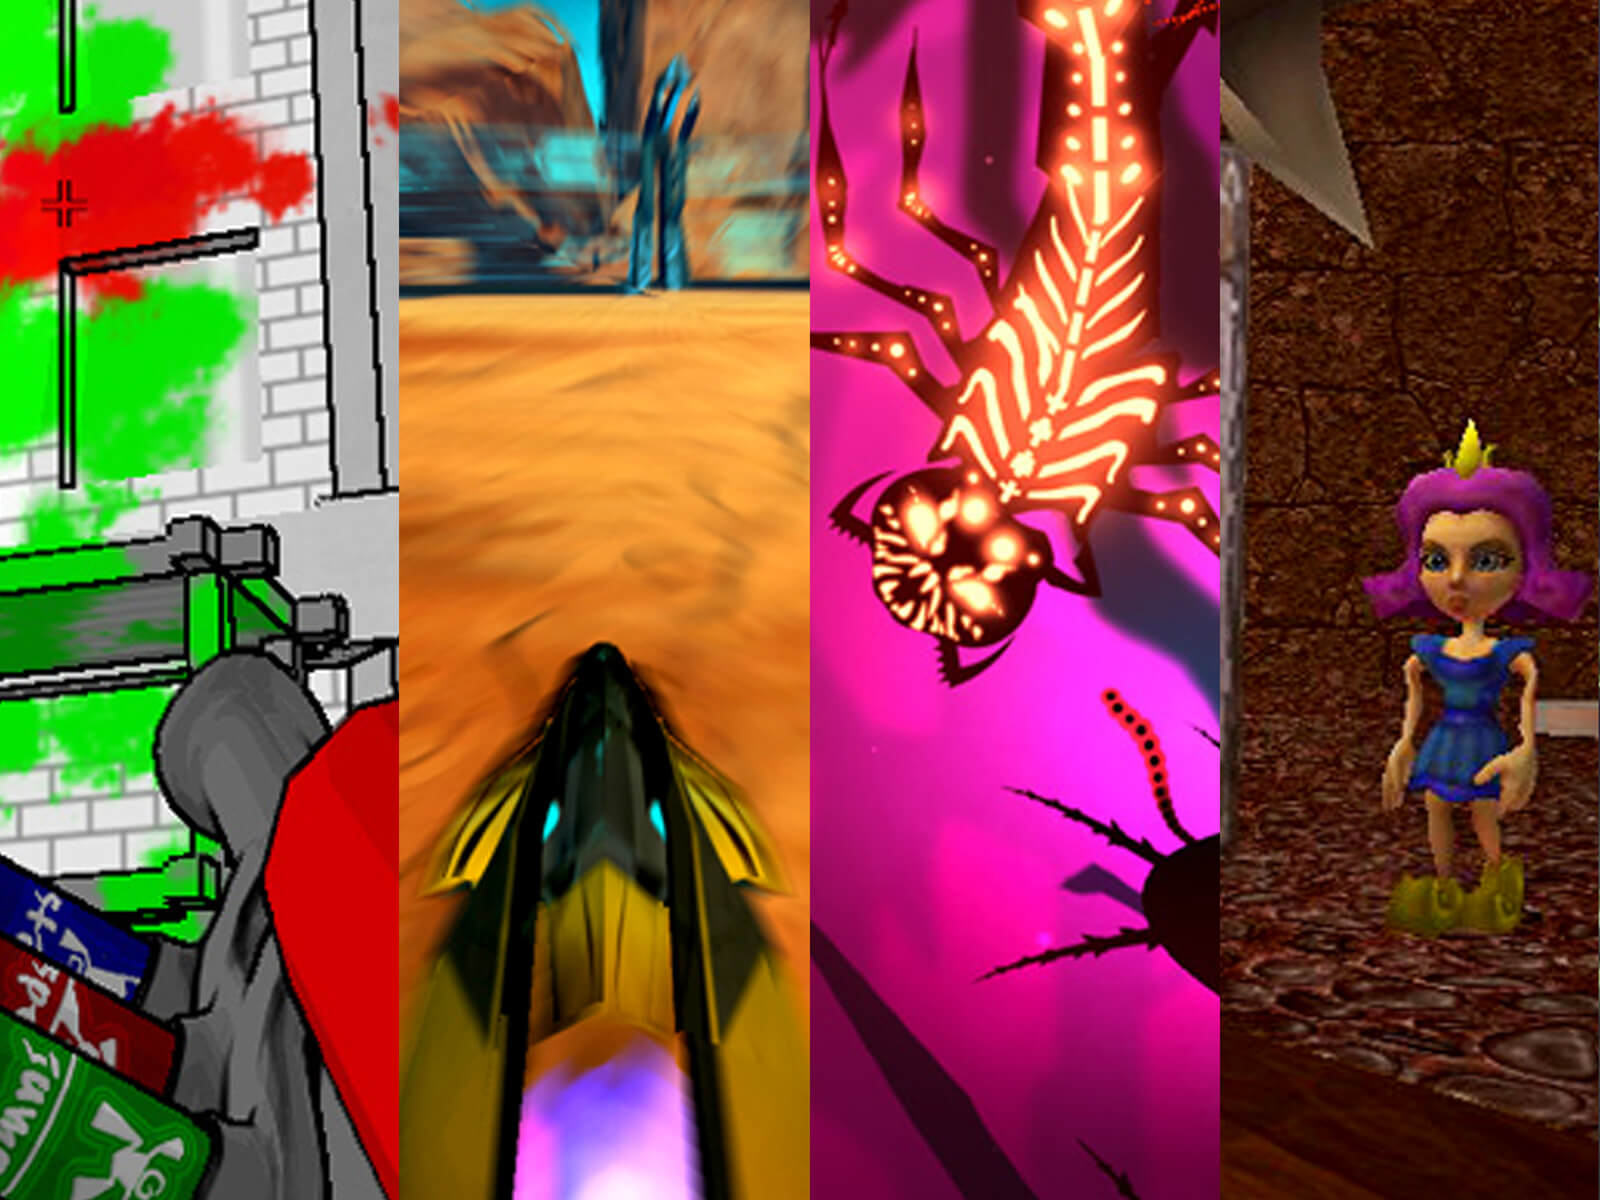 A mashup of screenshots from seven DigiPen games depicting an explosion, a hovercraft, a sea creature, a princess, and more.